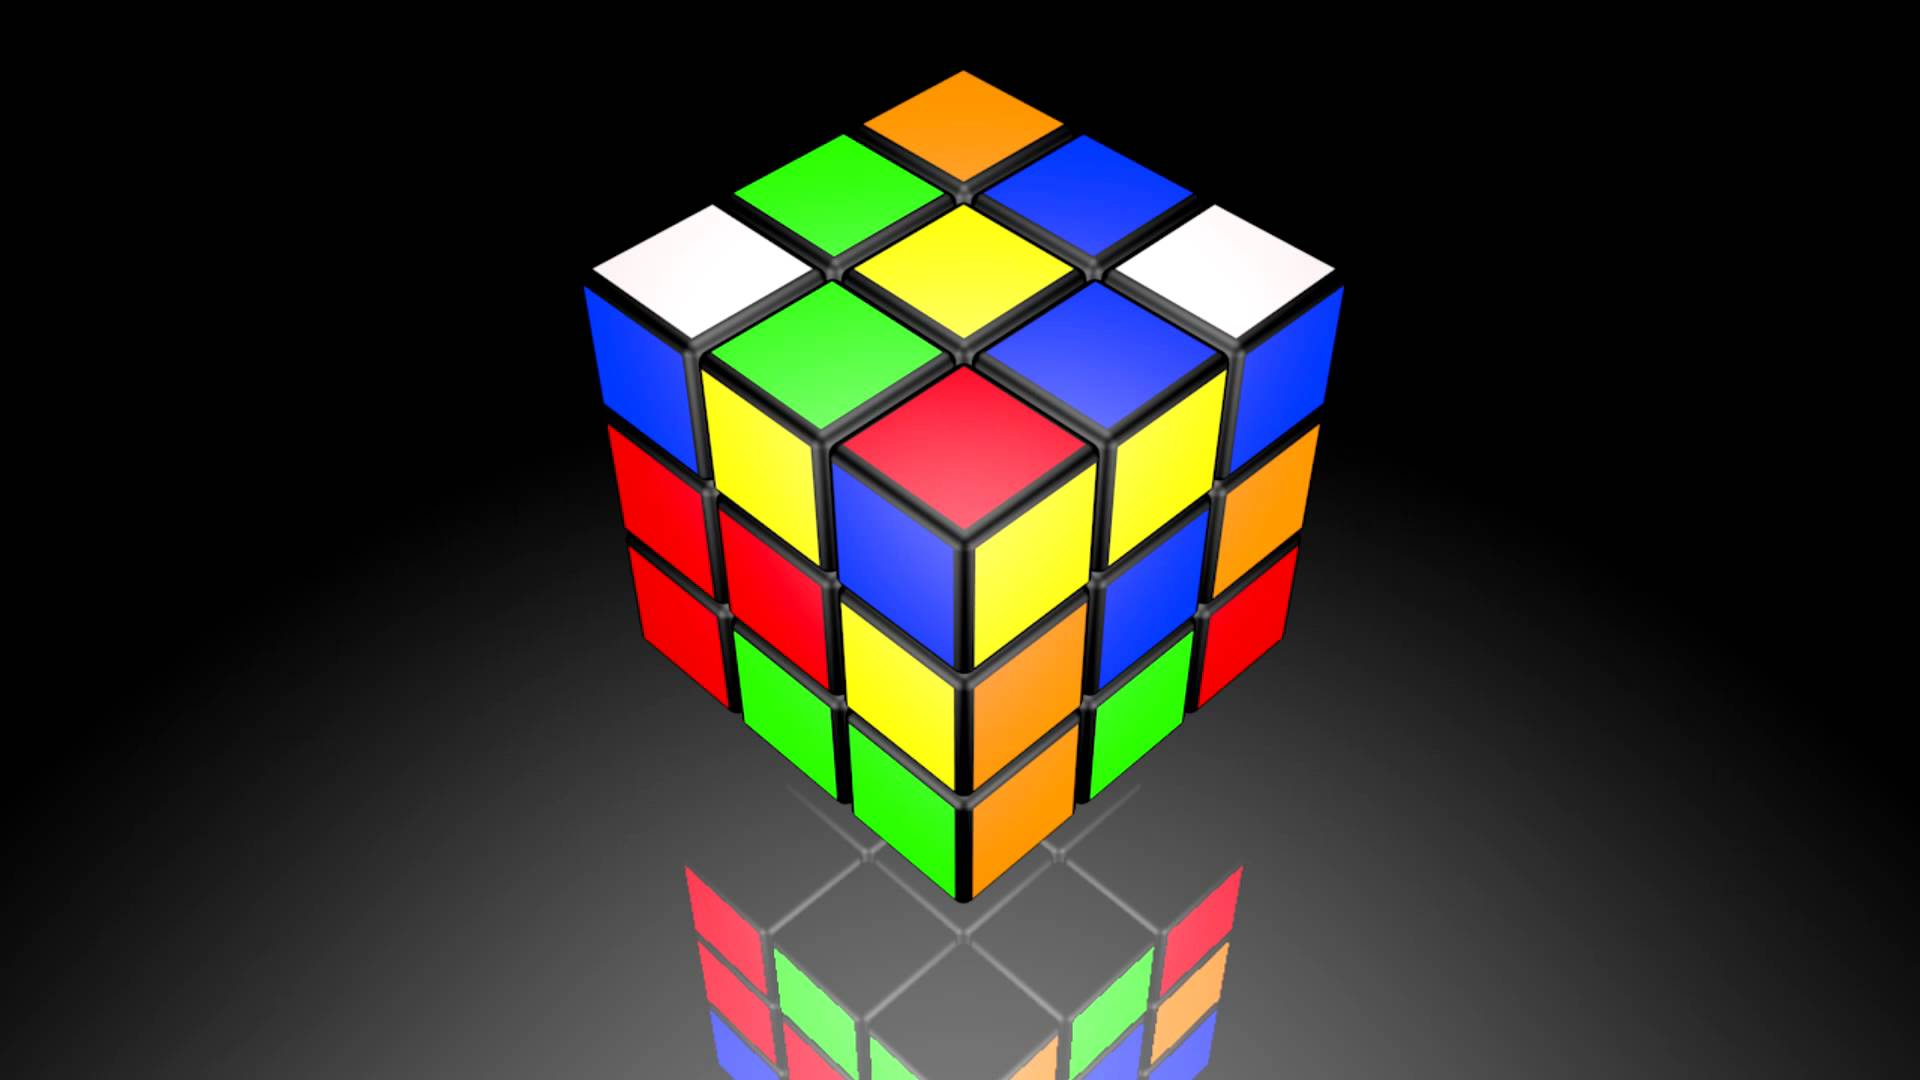 rubik's cube wallpapers high quality | download free